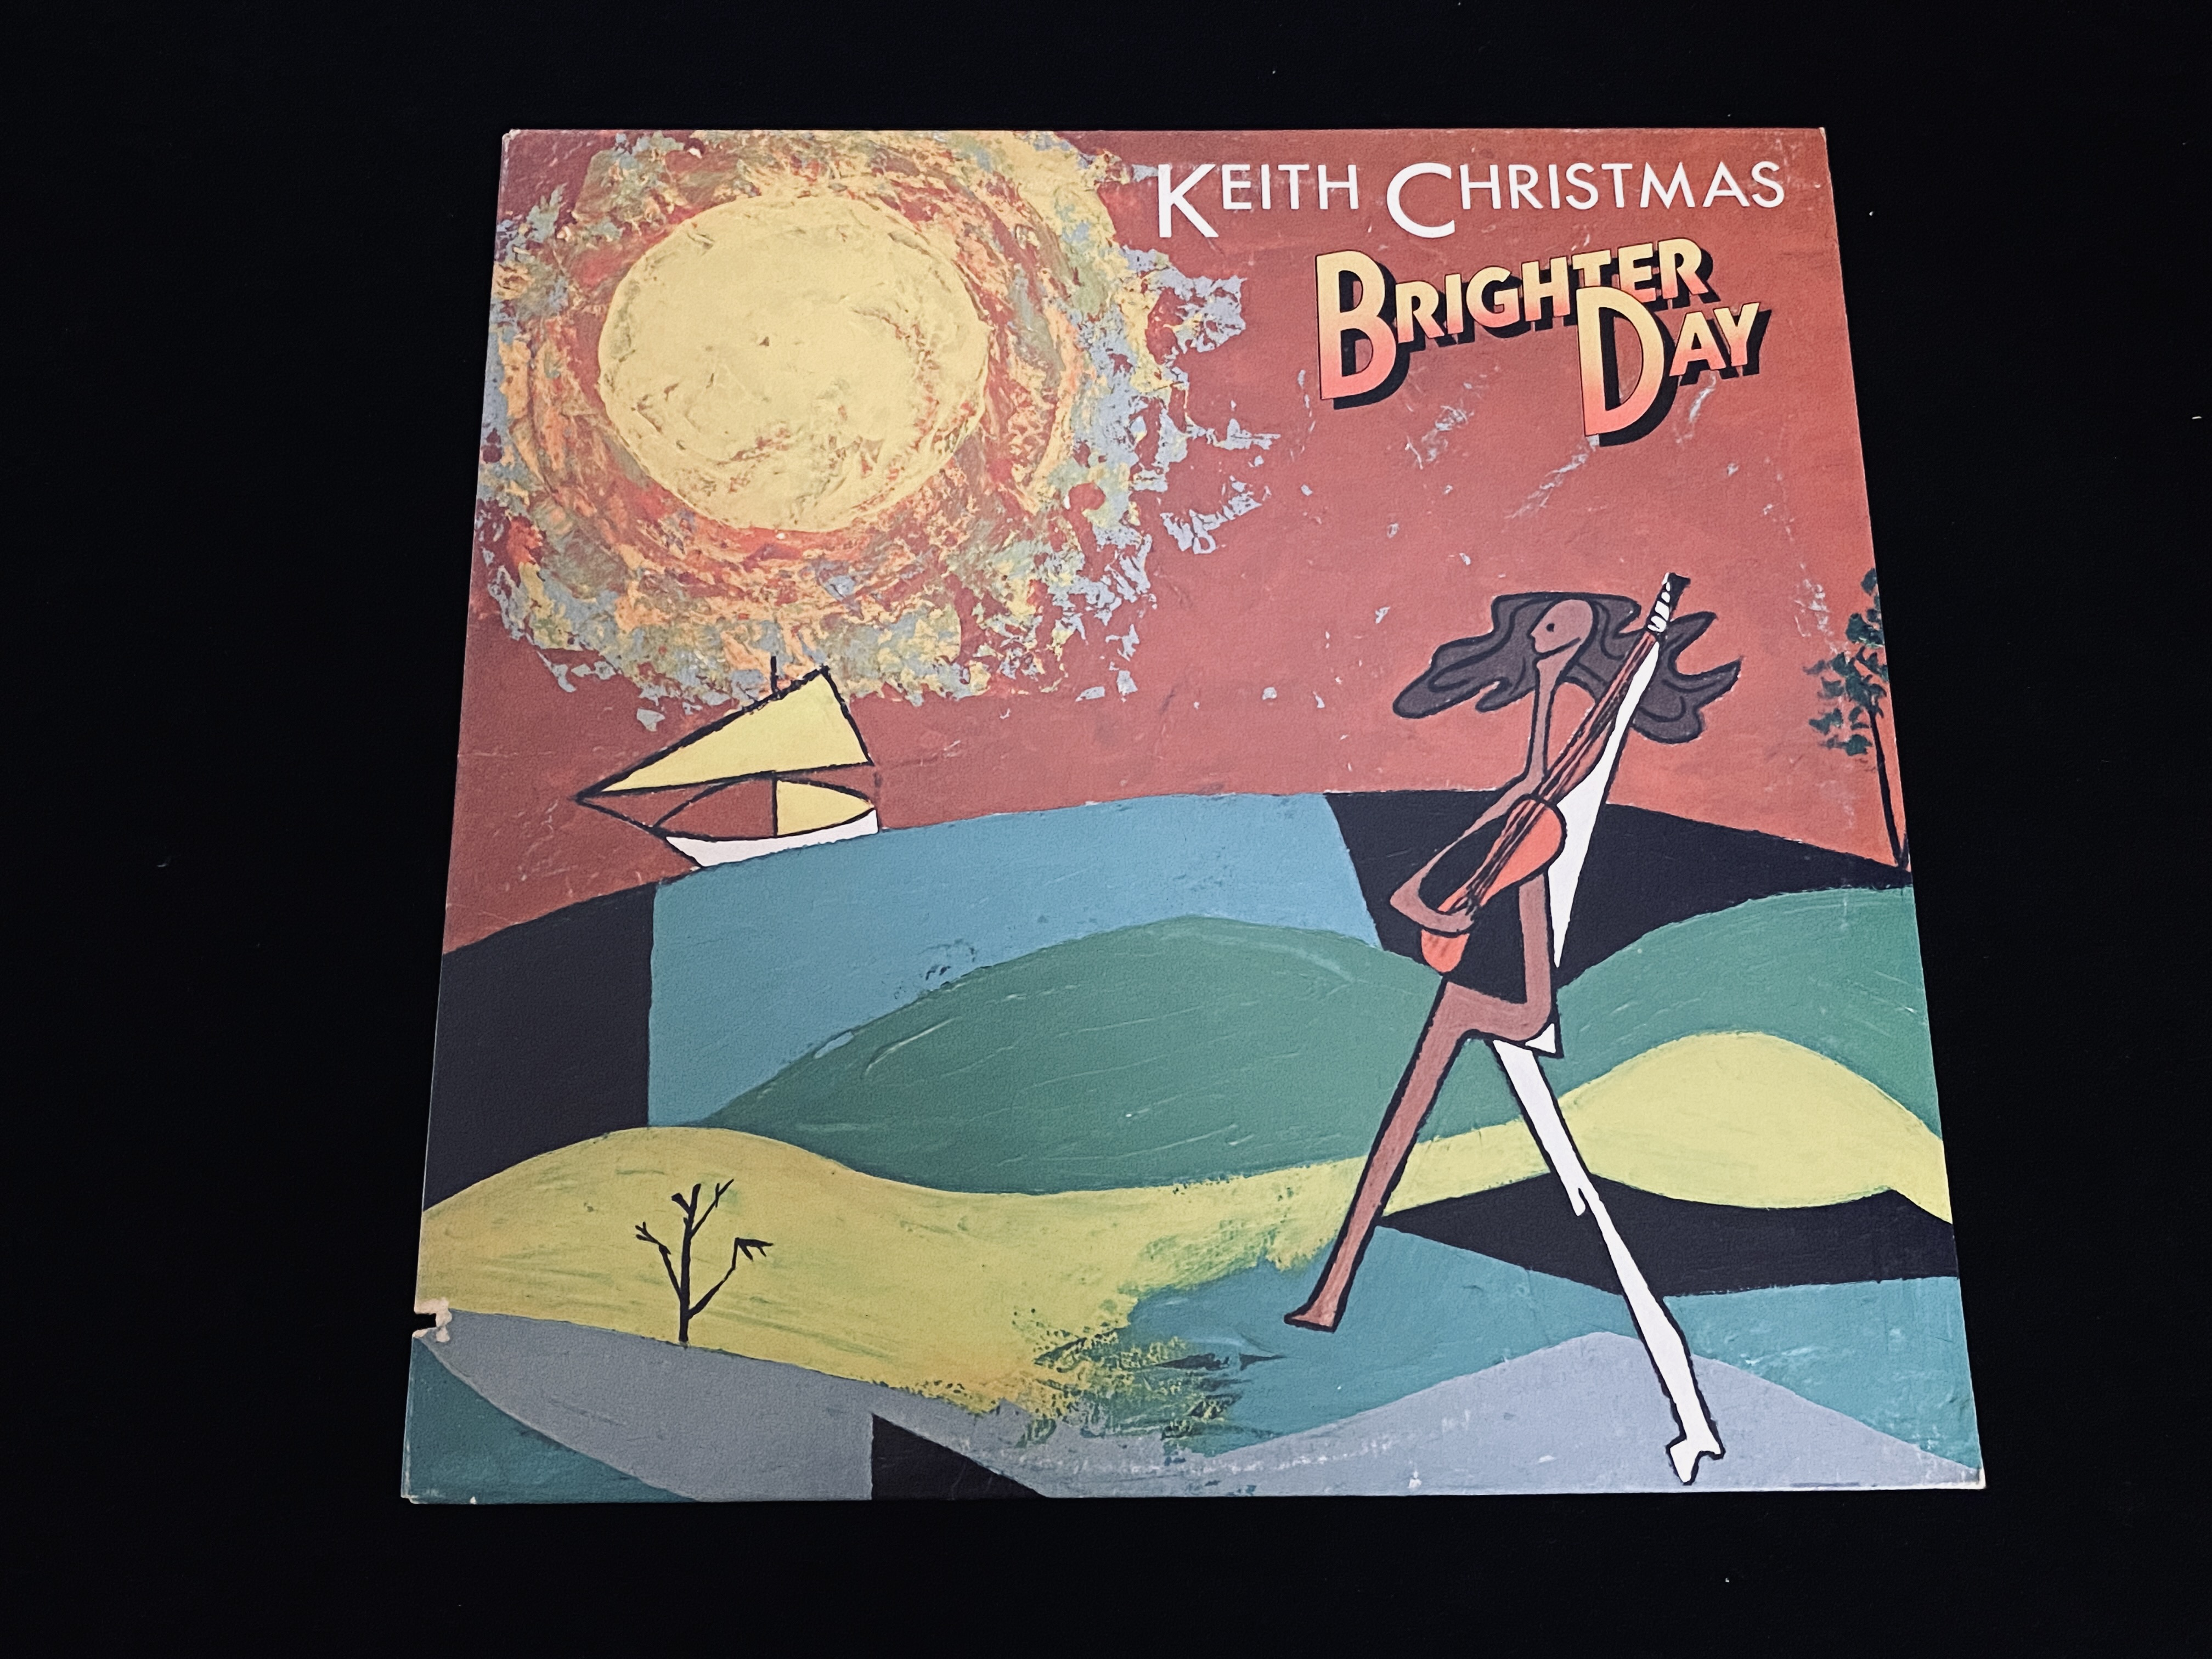 Keith Christmas - Brighter Day (US, 1975)